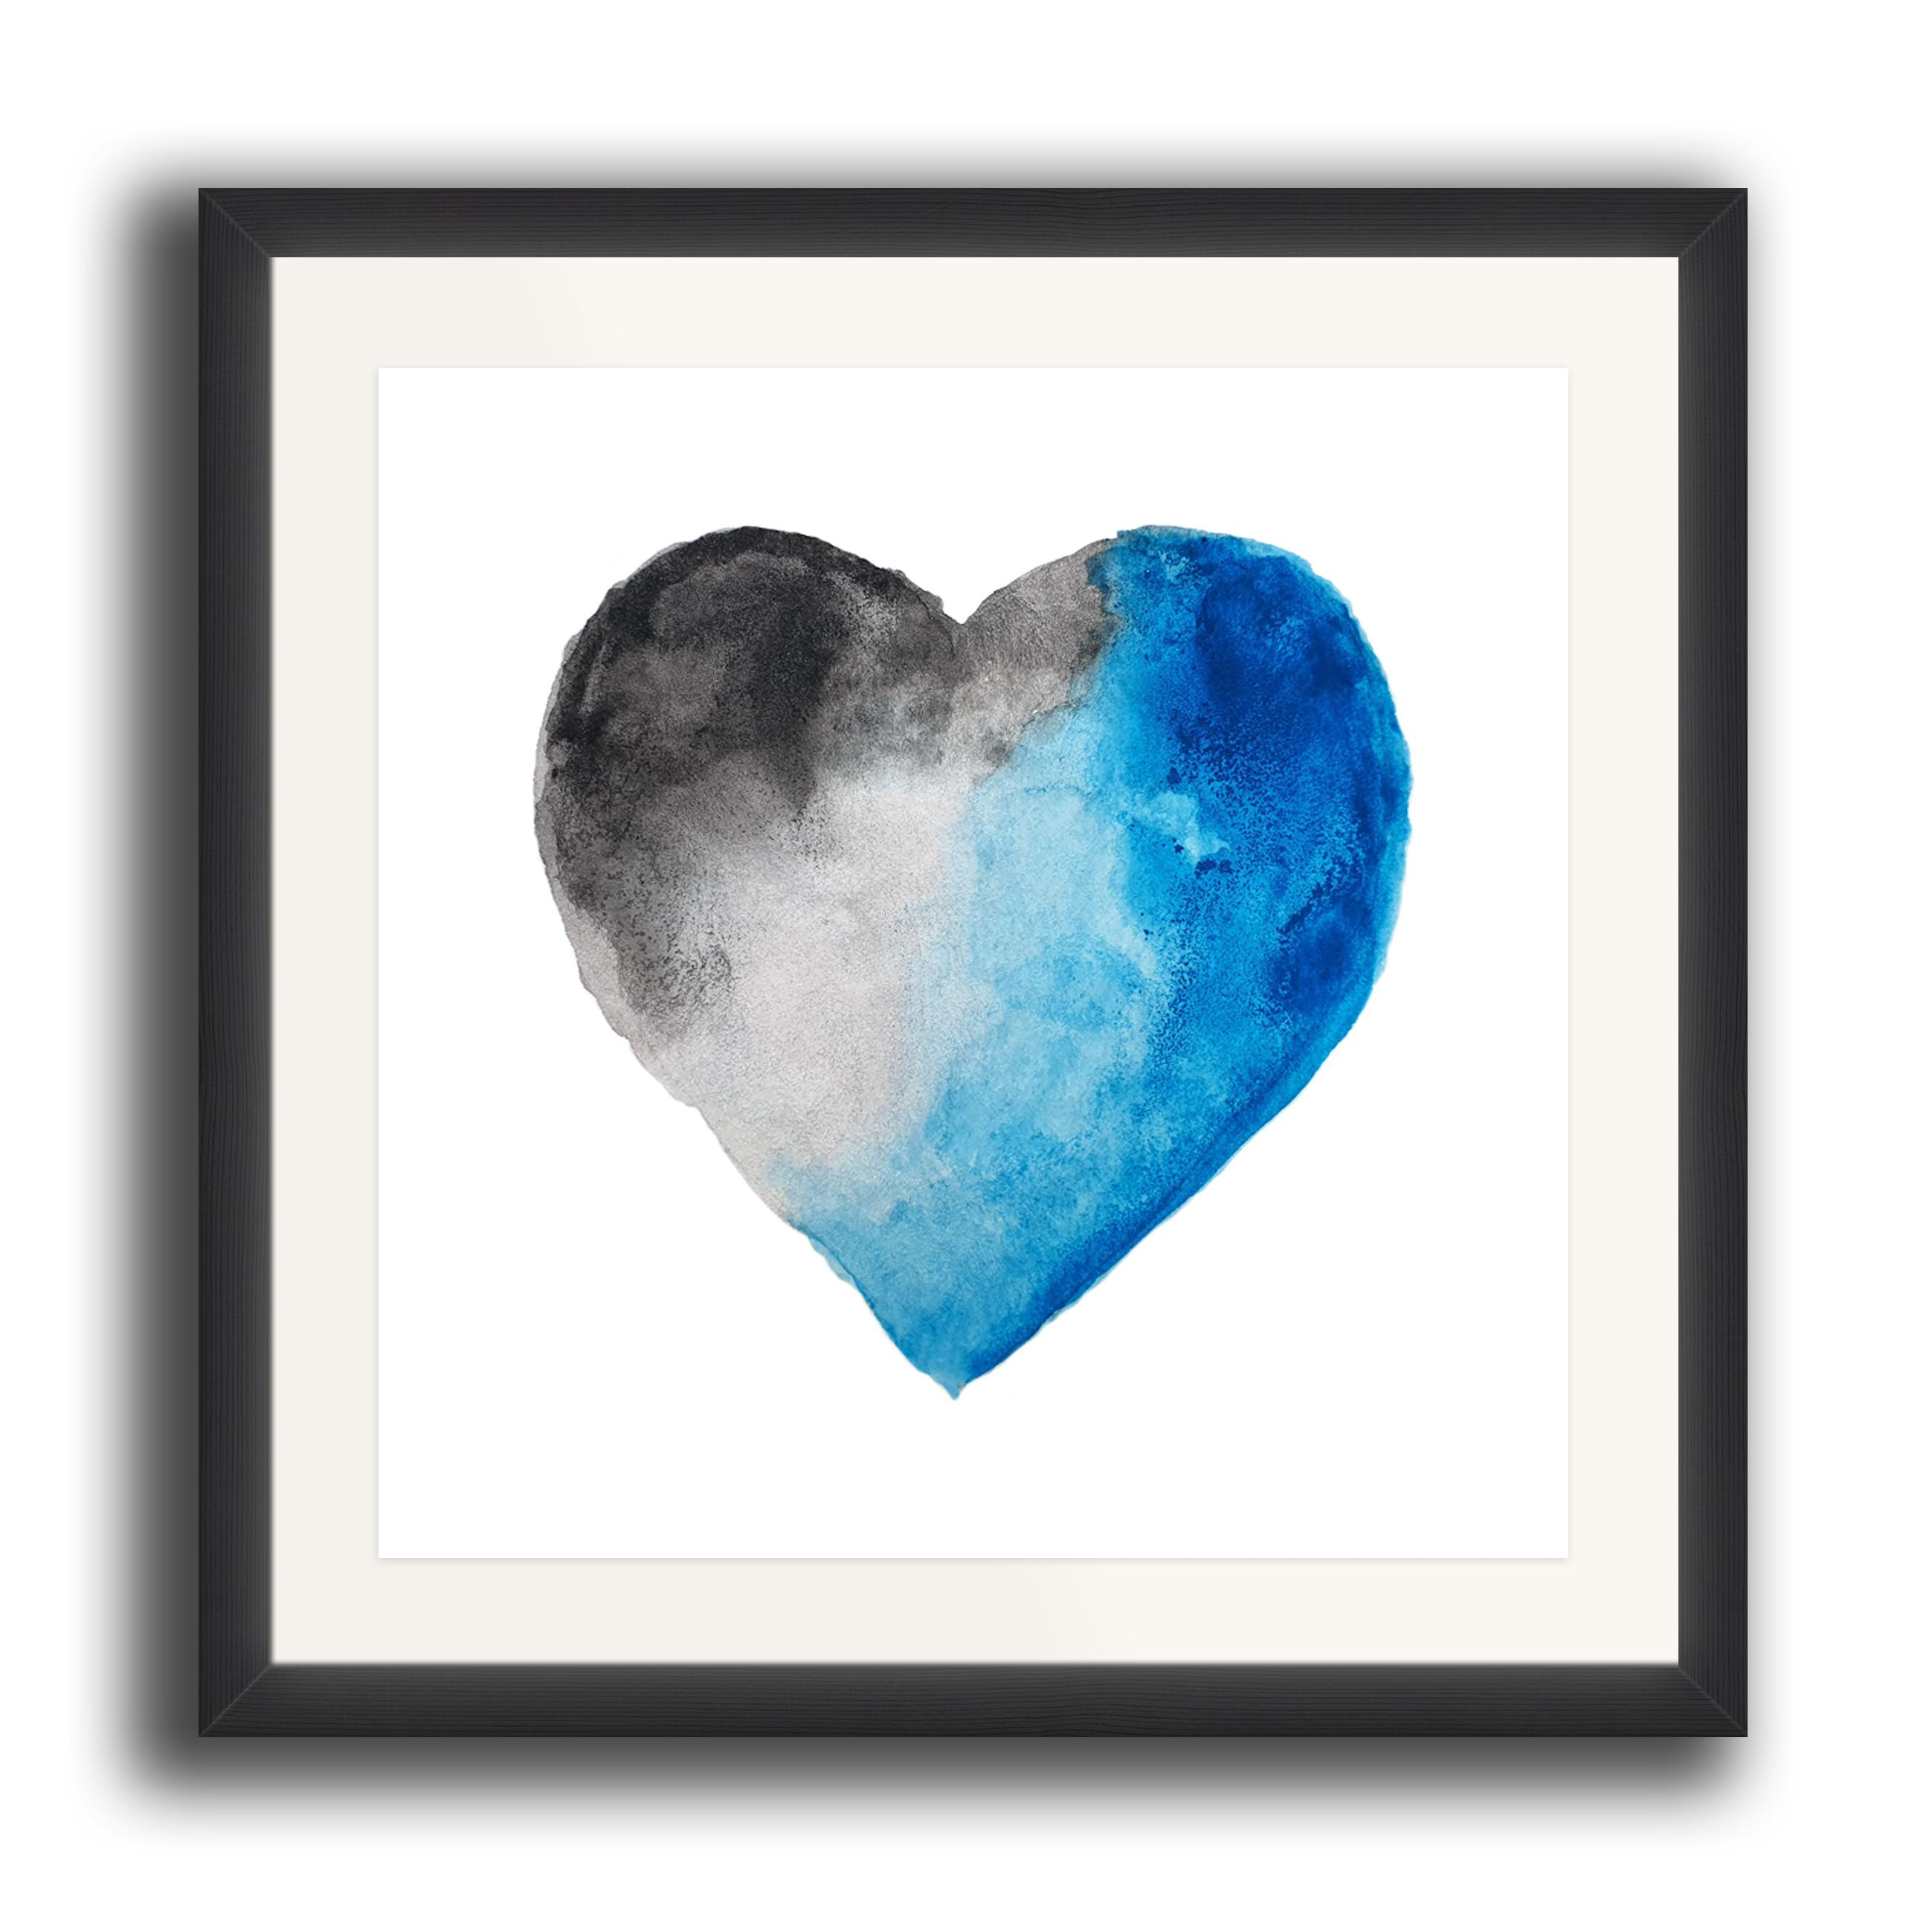 A watercolour print by Clarrie-Anne on eco fine art paper titled Thunder Heart showing a blue and greyscale watercolour heart on a white background. The image is set in a black coloured picture frame.